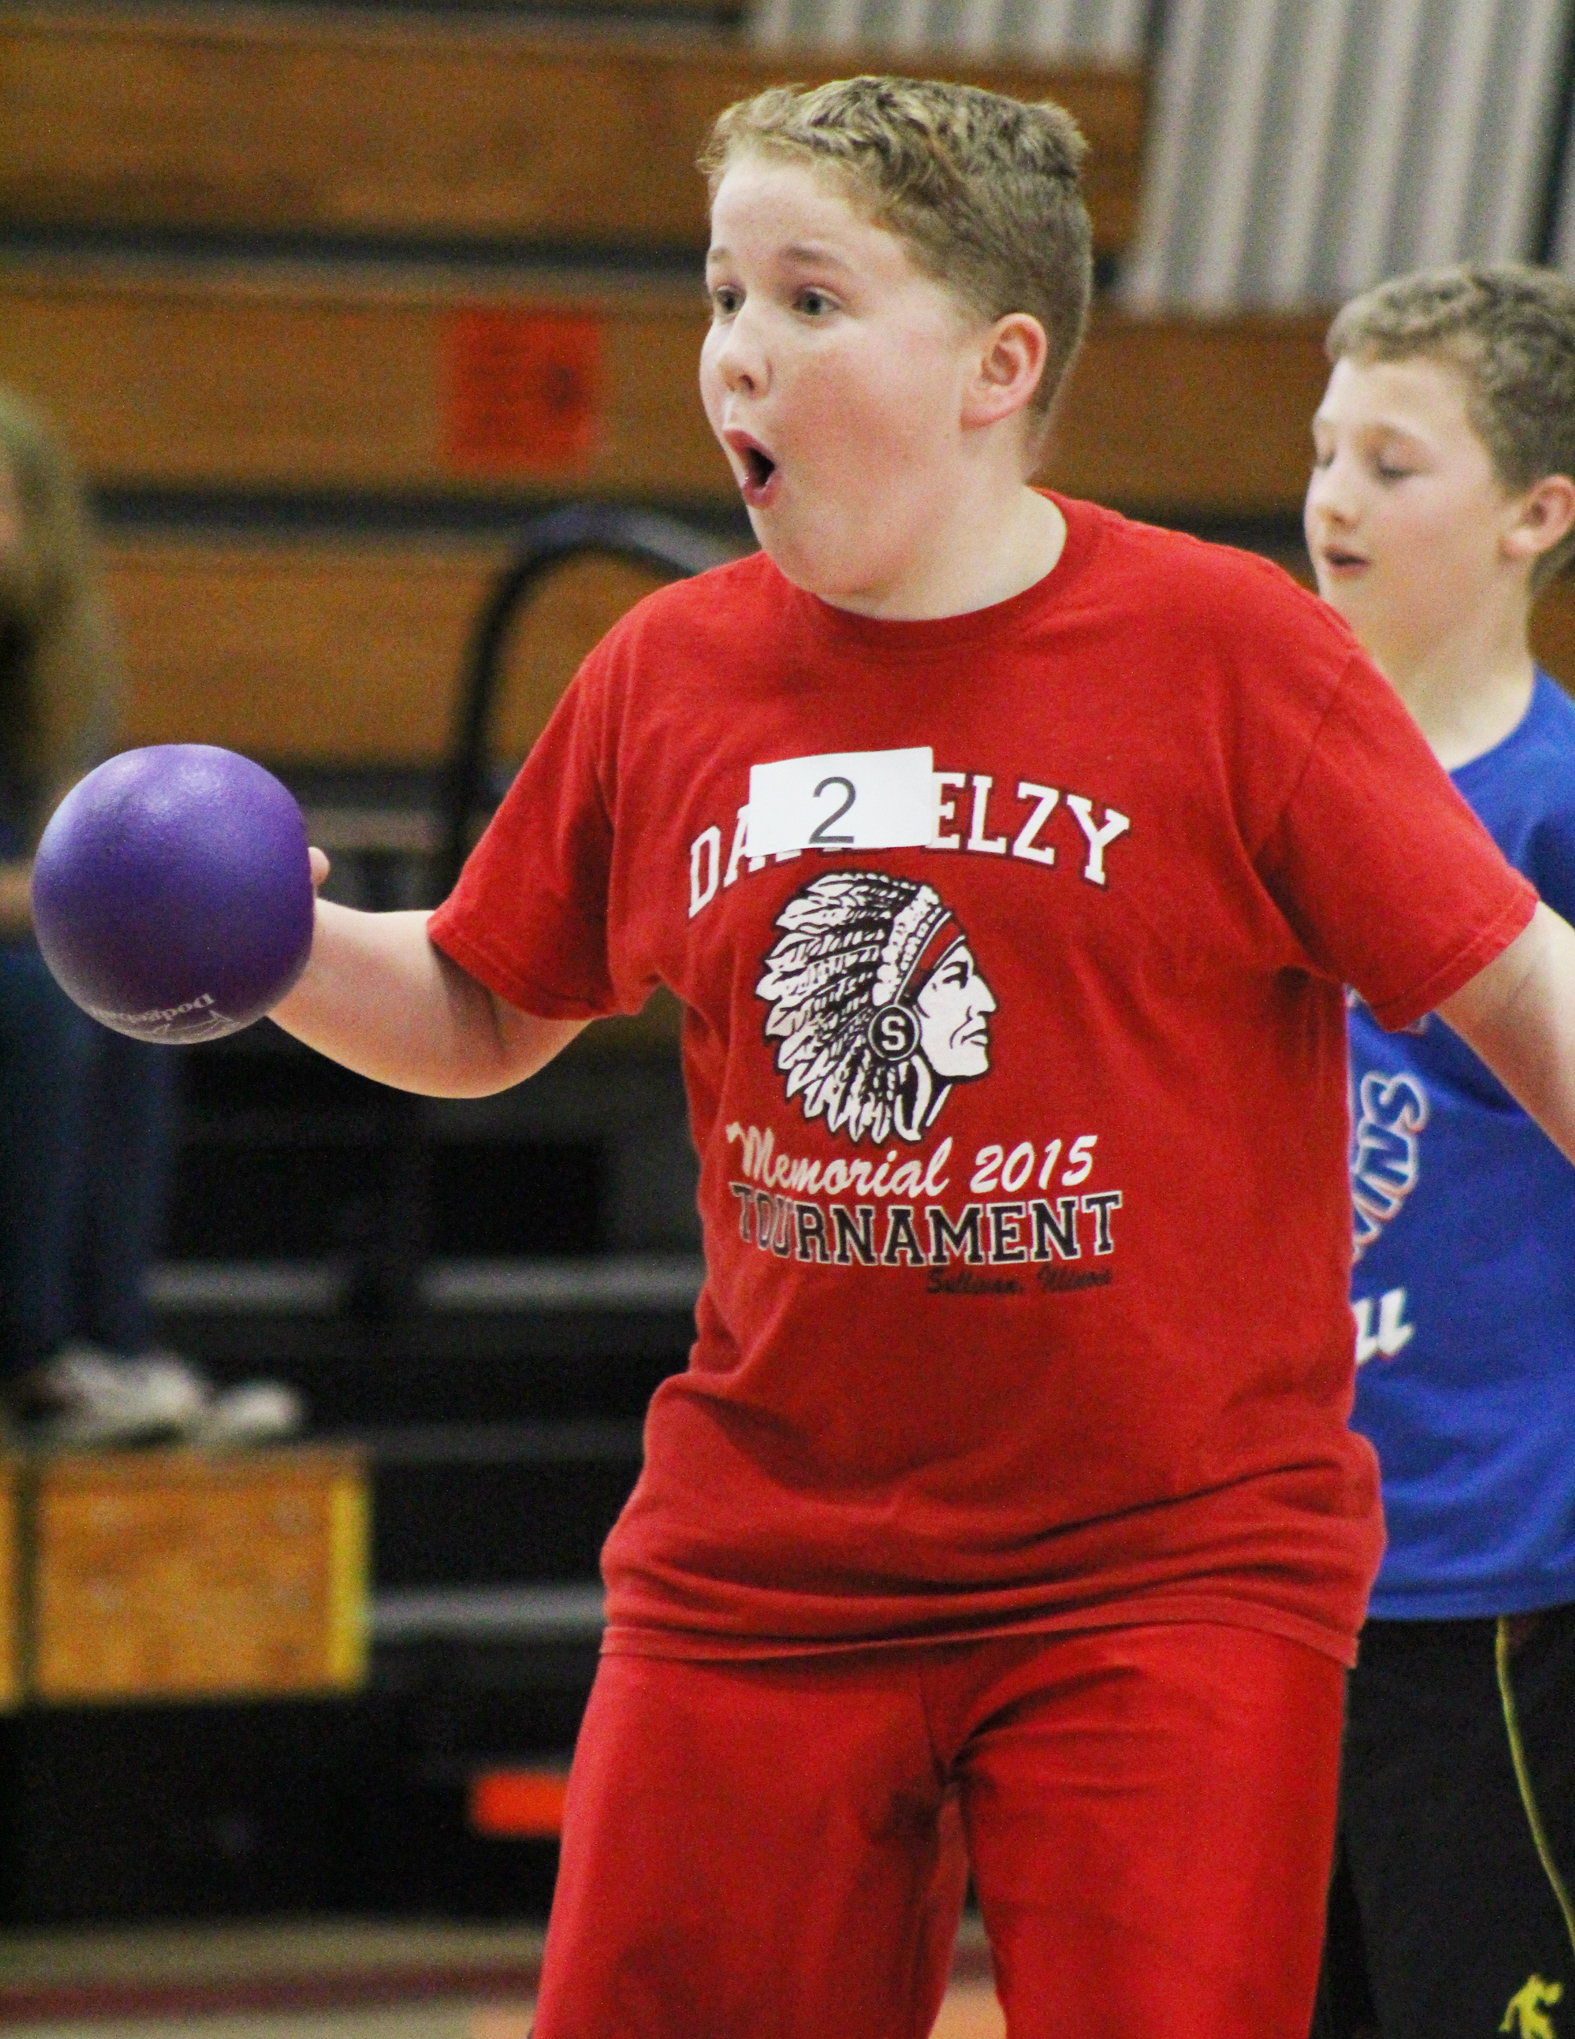 Photo Submitted Blue Dolphins Host Busterball Sullivan Blue Dolphins hosted their 13th Anniversary Busterball tournament fundraiser Saturday March 5 at Sullivan High School. Sixty-two teams played with more than 400 participants from kindergarten to adult. Teams from Okaw Valley, Mattoon, Lovington and Sullivan participated, and spectators were welcome to watch the action free all day long. Trophies were given to first place team winners, medals to the second place team winners and free snow cones for the team members who exhibited the best sportsmanship for each grade level. Many new fun activities were available during the event as well such as games, face painting and a raffle table with a wide variety of prizes.